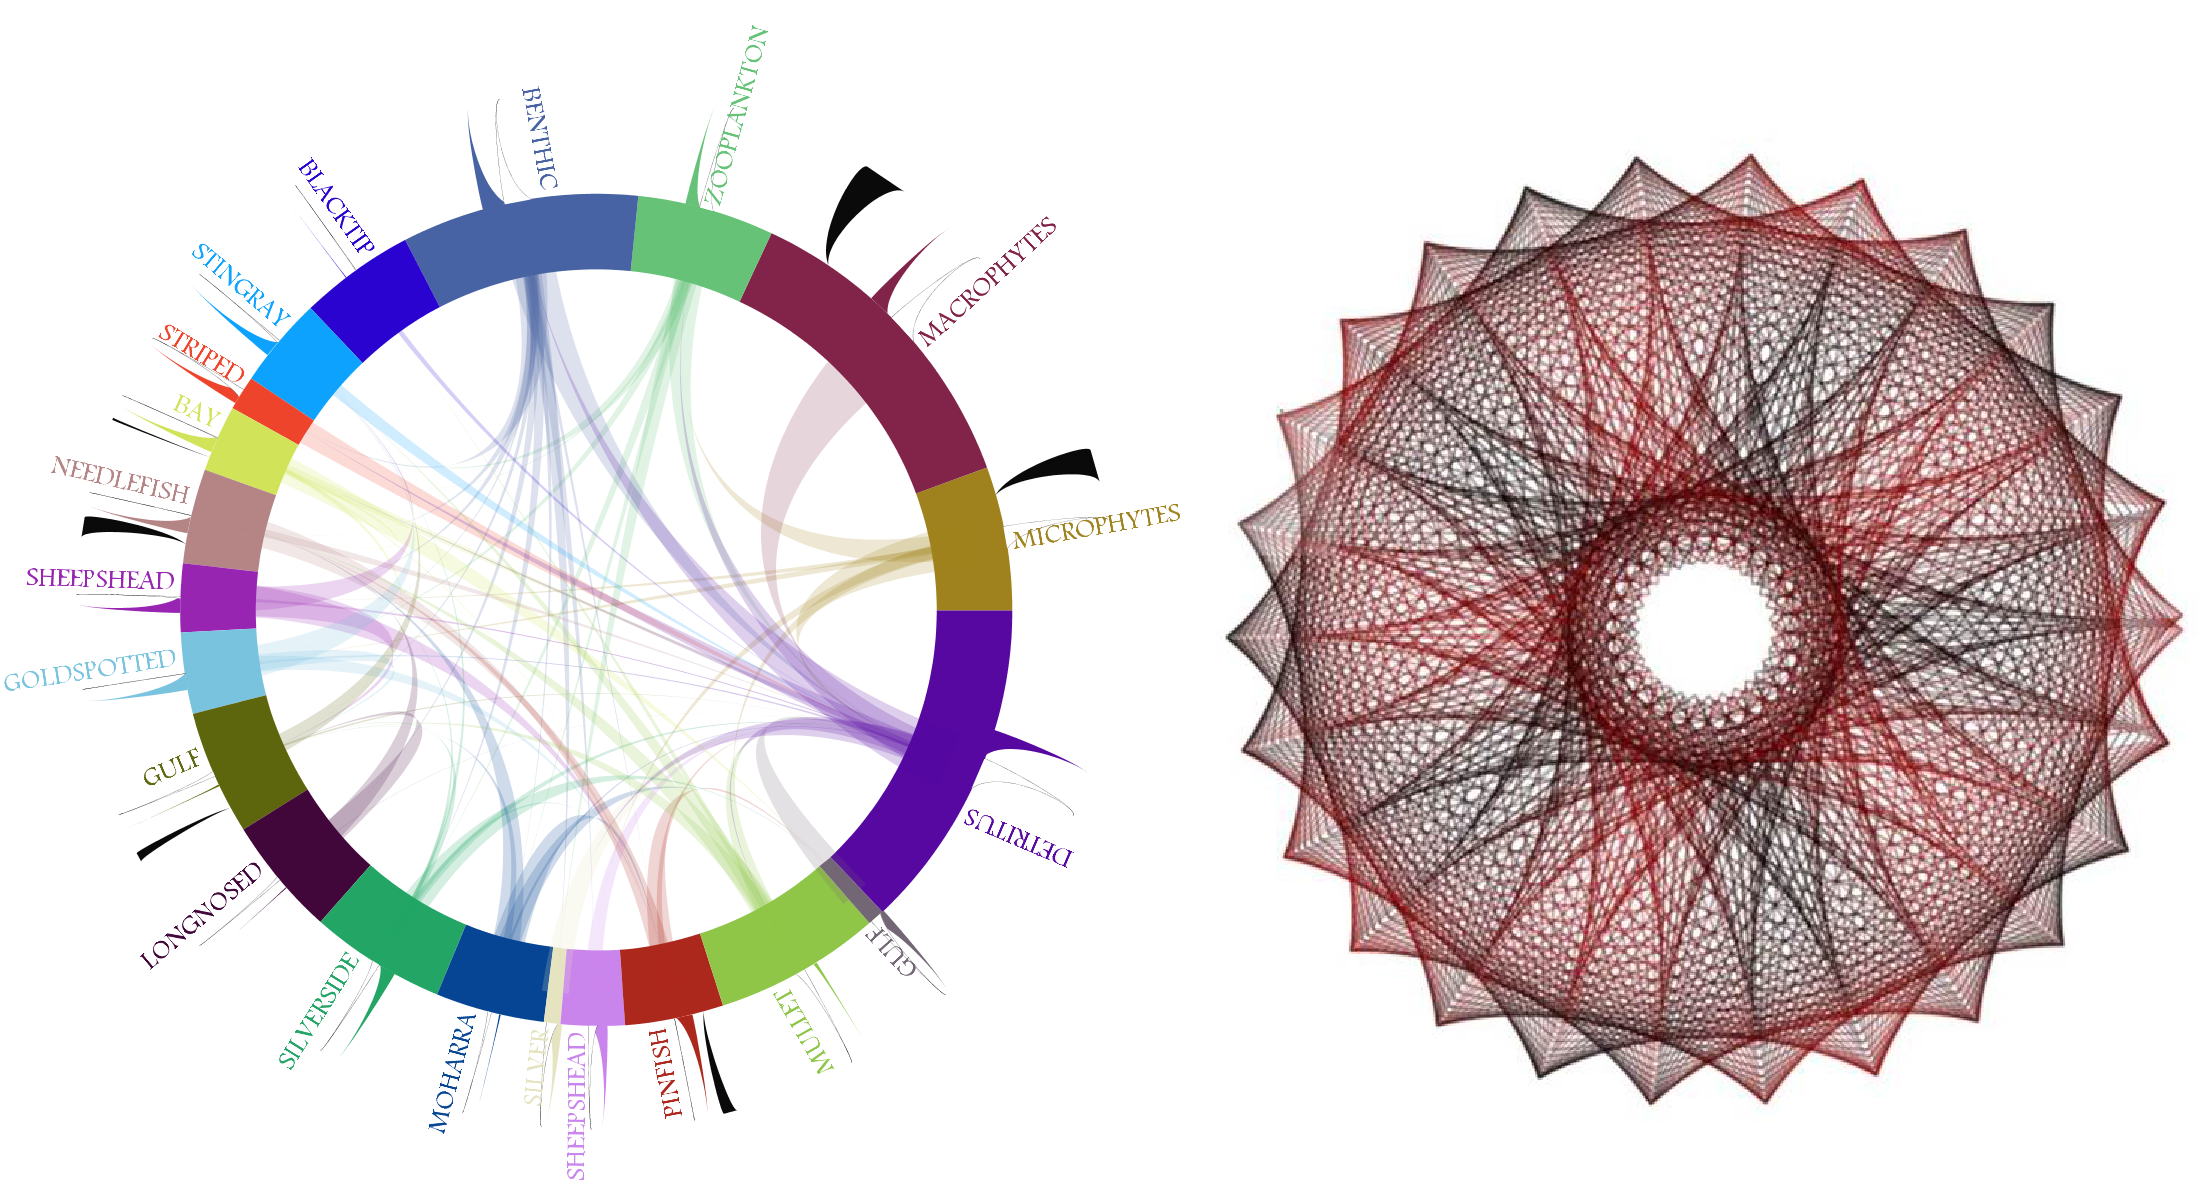 Aesthetic visualization of ecological networks, inspired by Spirograph